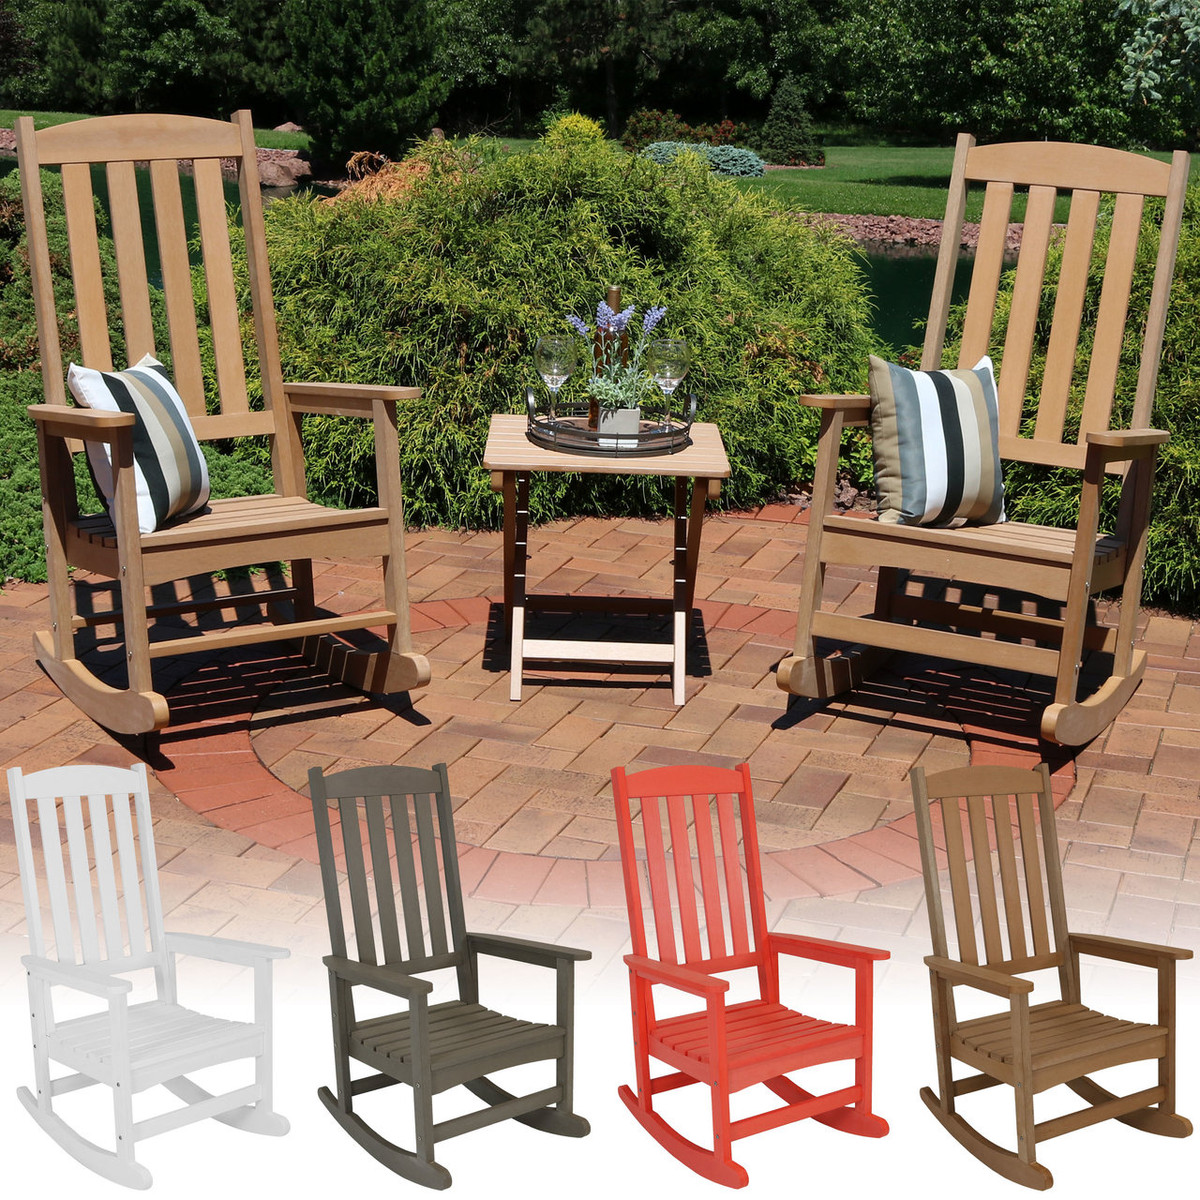 Sunnydaze 3 piece all weather patio furniture set 2 rocking chairs and 1 folding side table